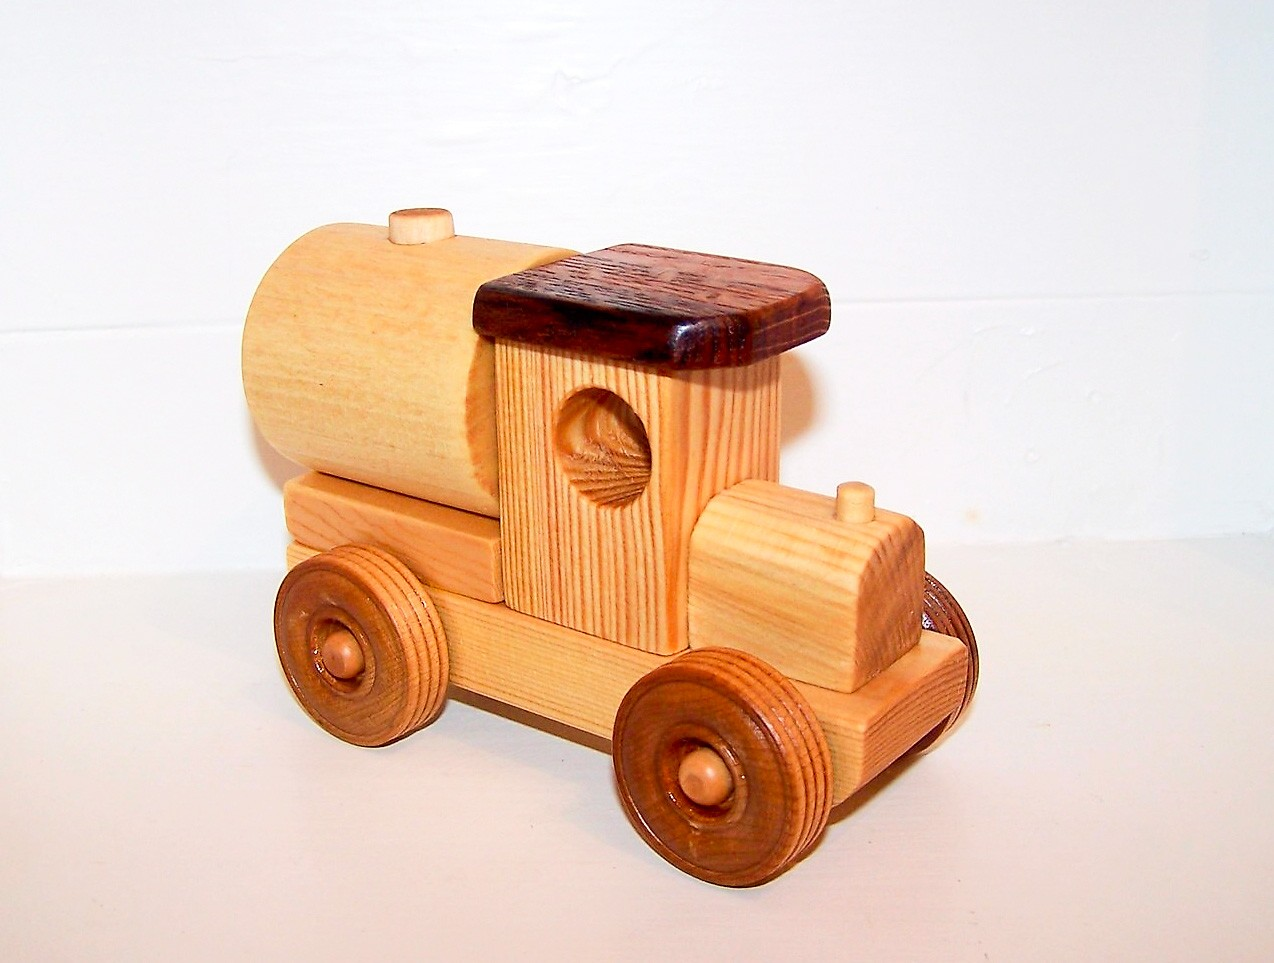 ... Wooden Toy Tank Plans , Wooden Toy Car , Wooden Toy Plane , Wooden Toy